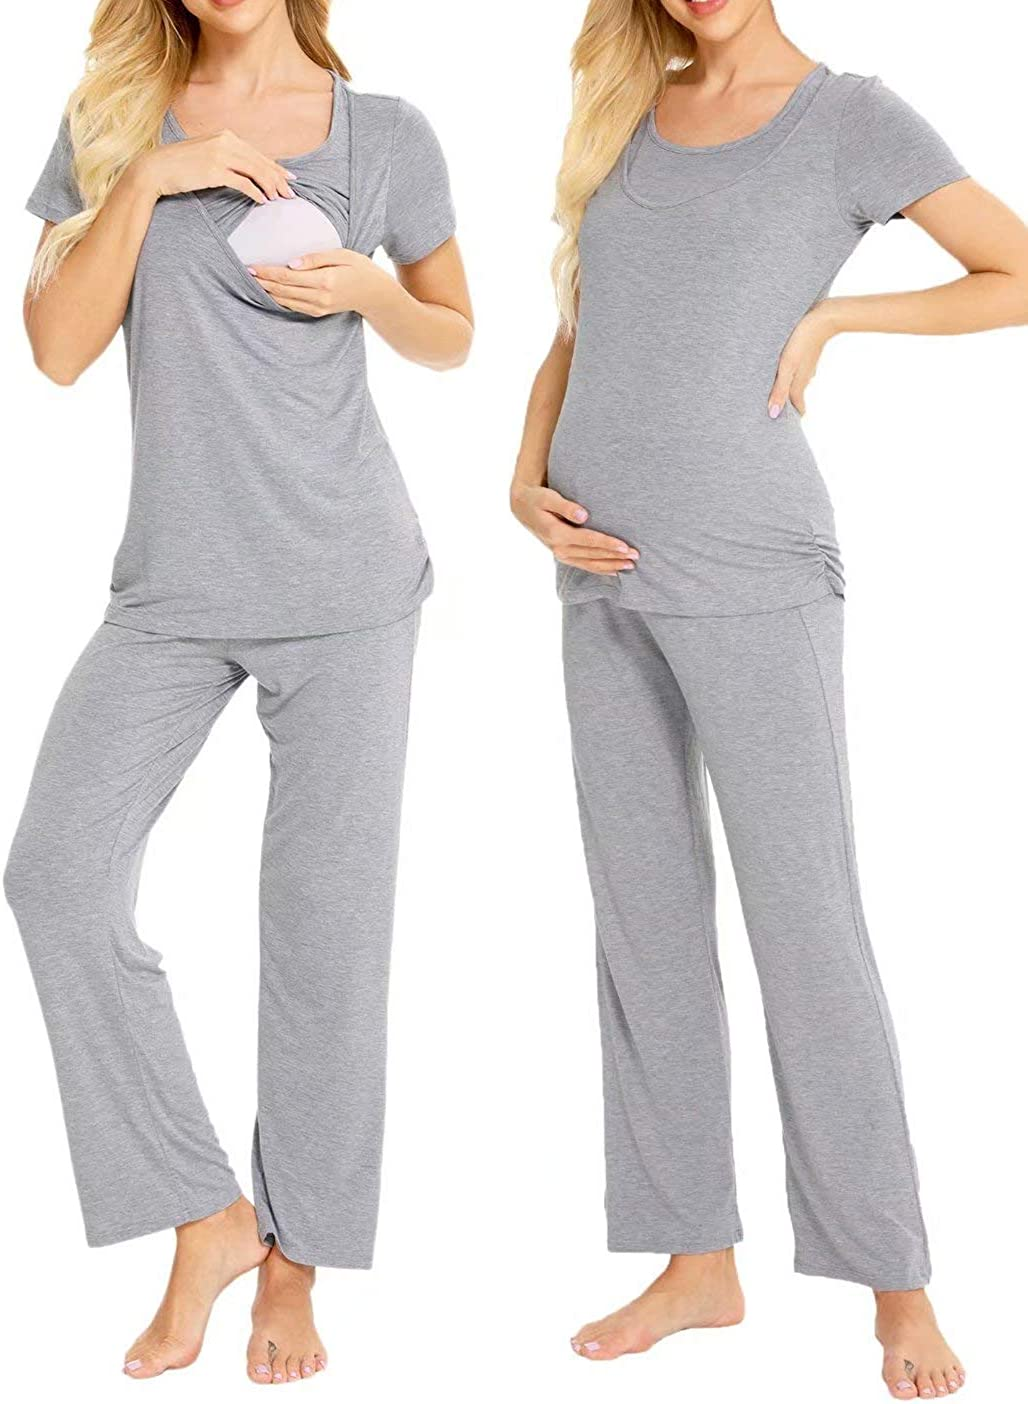 LecGee Labor Delivery Maternity Nursing Max Max 64% OFF 75% OFF Sets Loungewear Pajama f